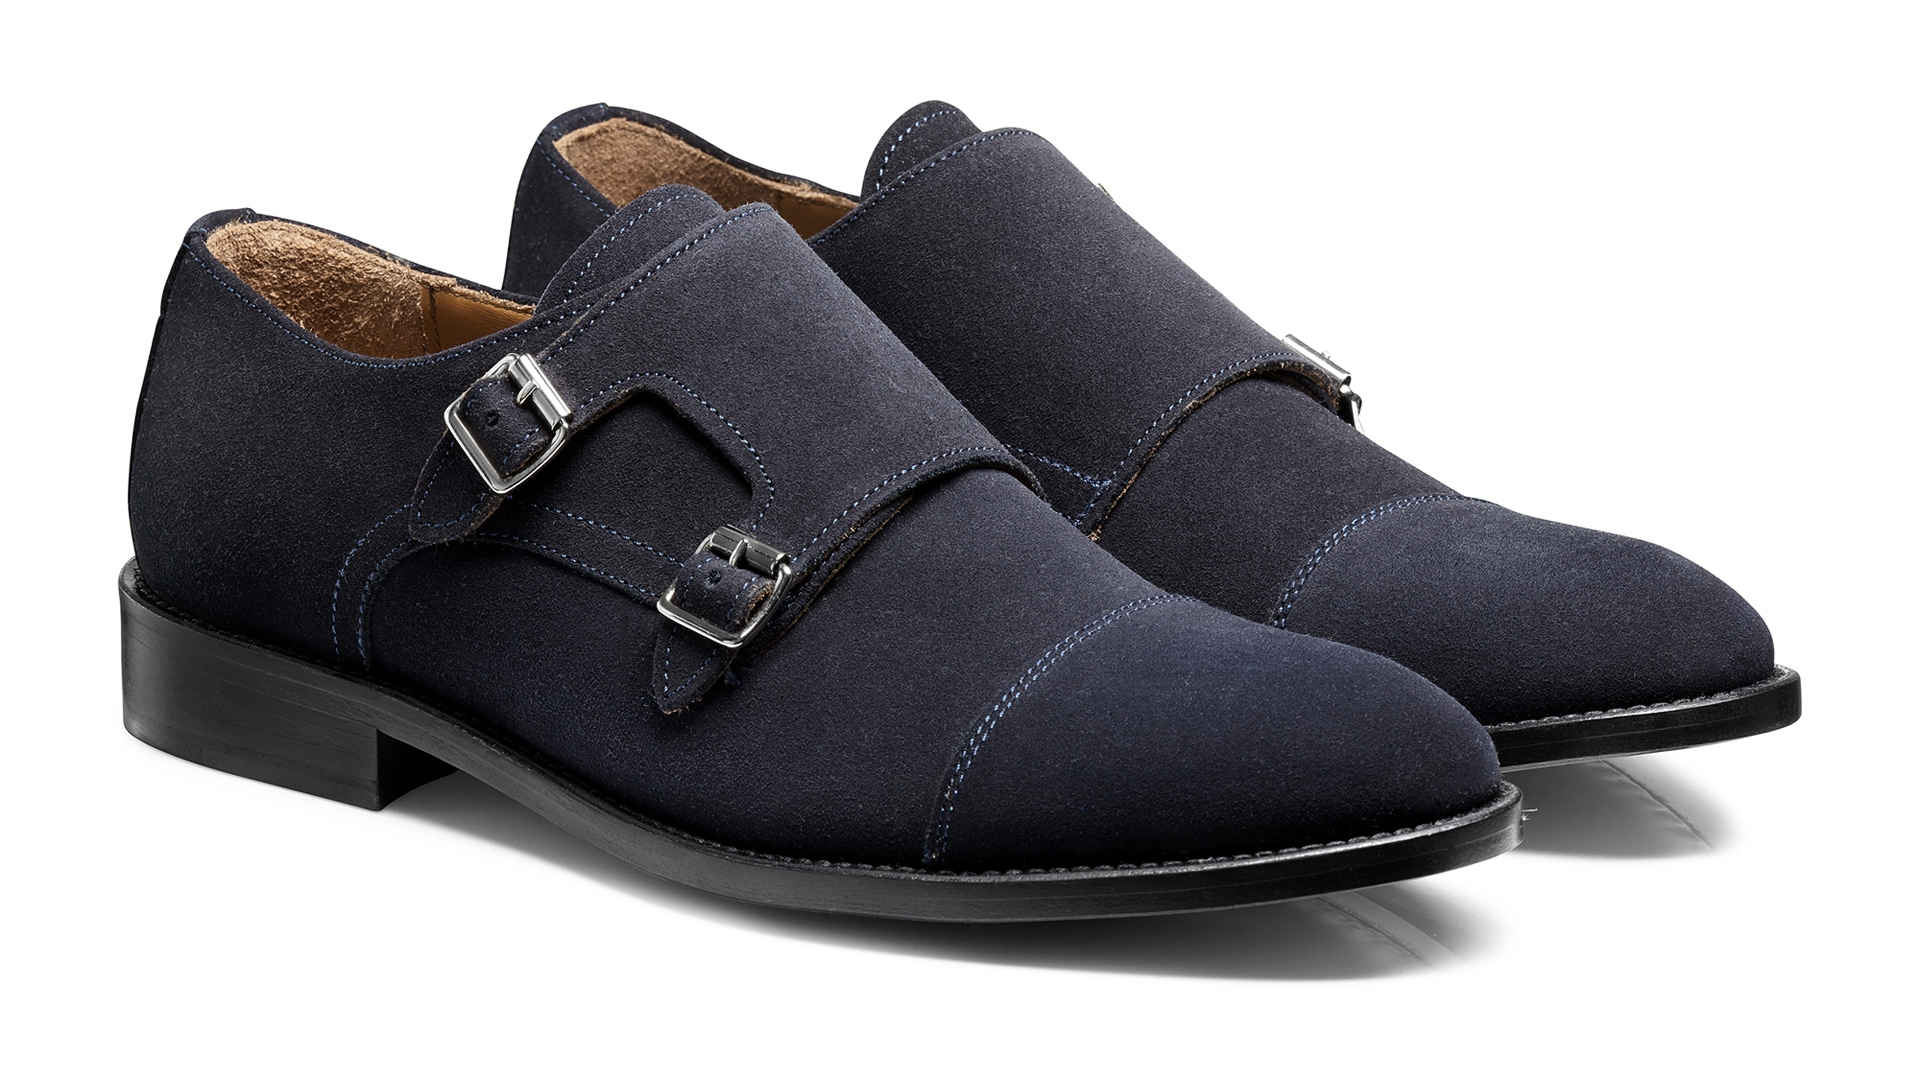 Monk Shoes Granatowe Zamsz